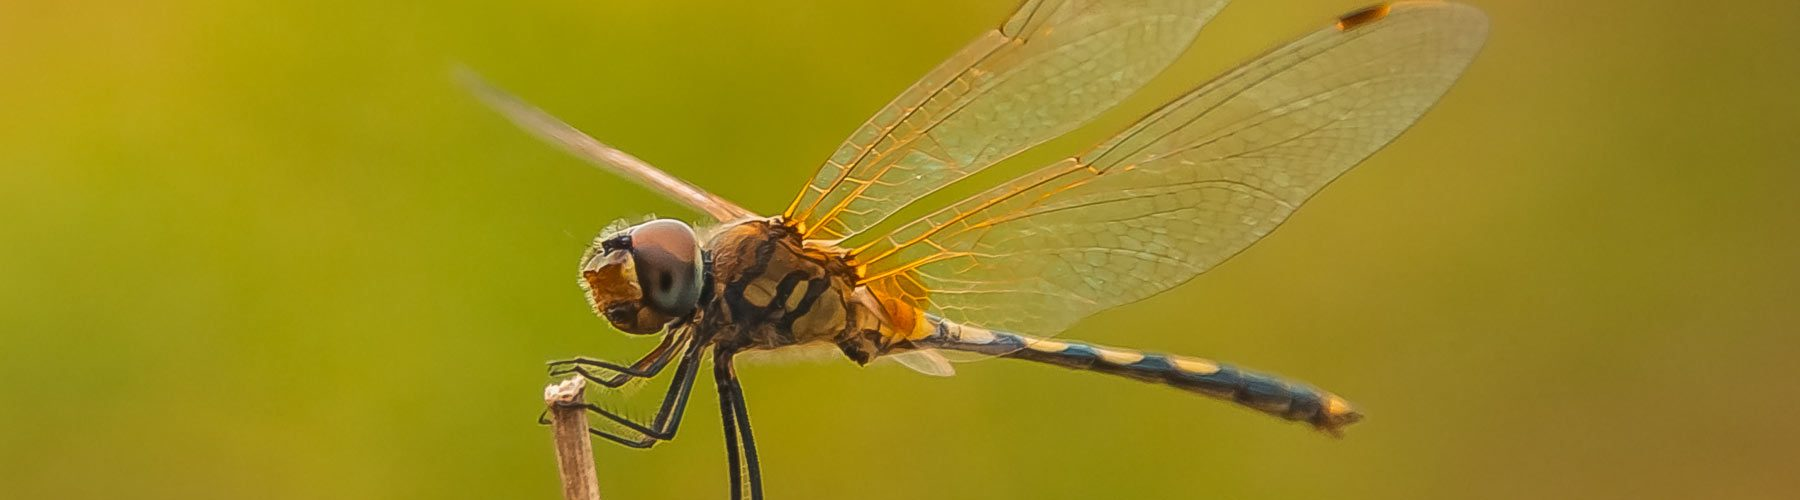 Dragonfly in Laos. Photography by Julien Thomas.